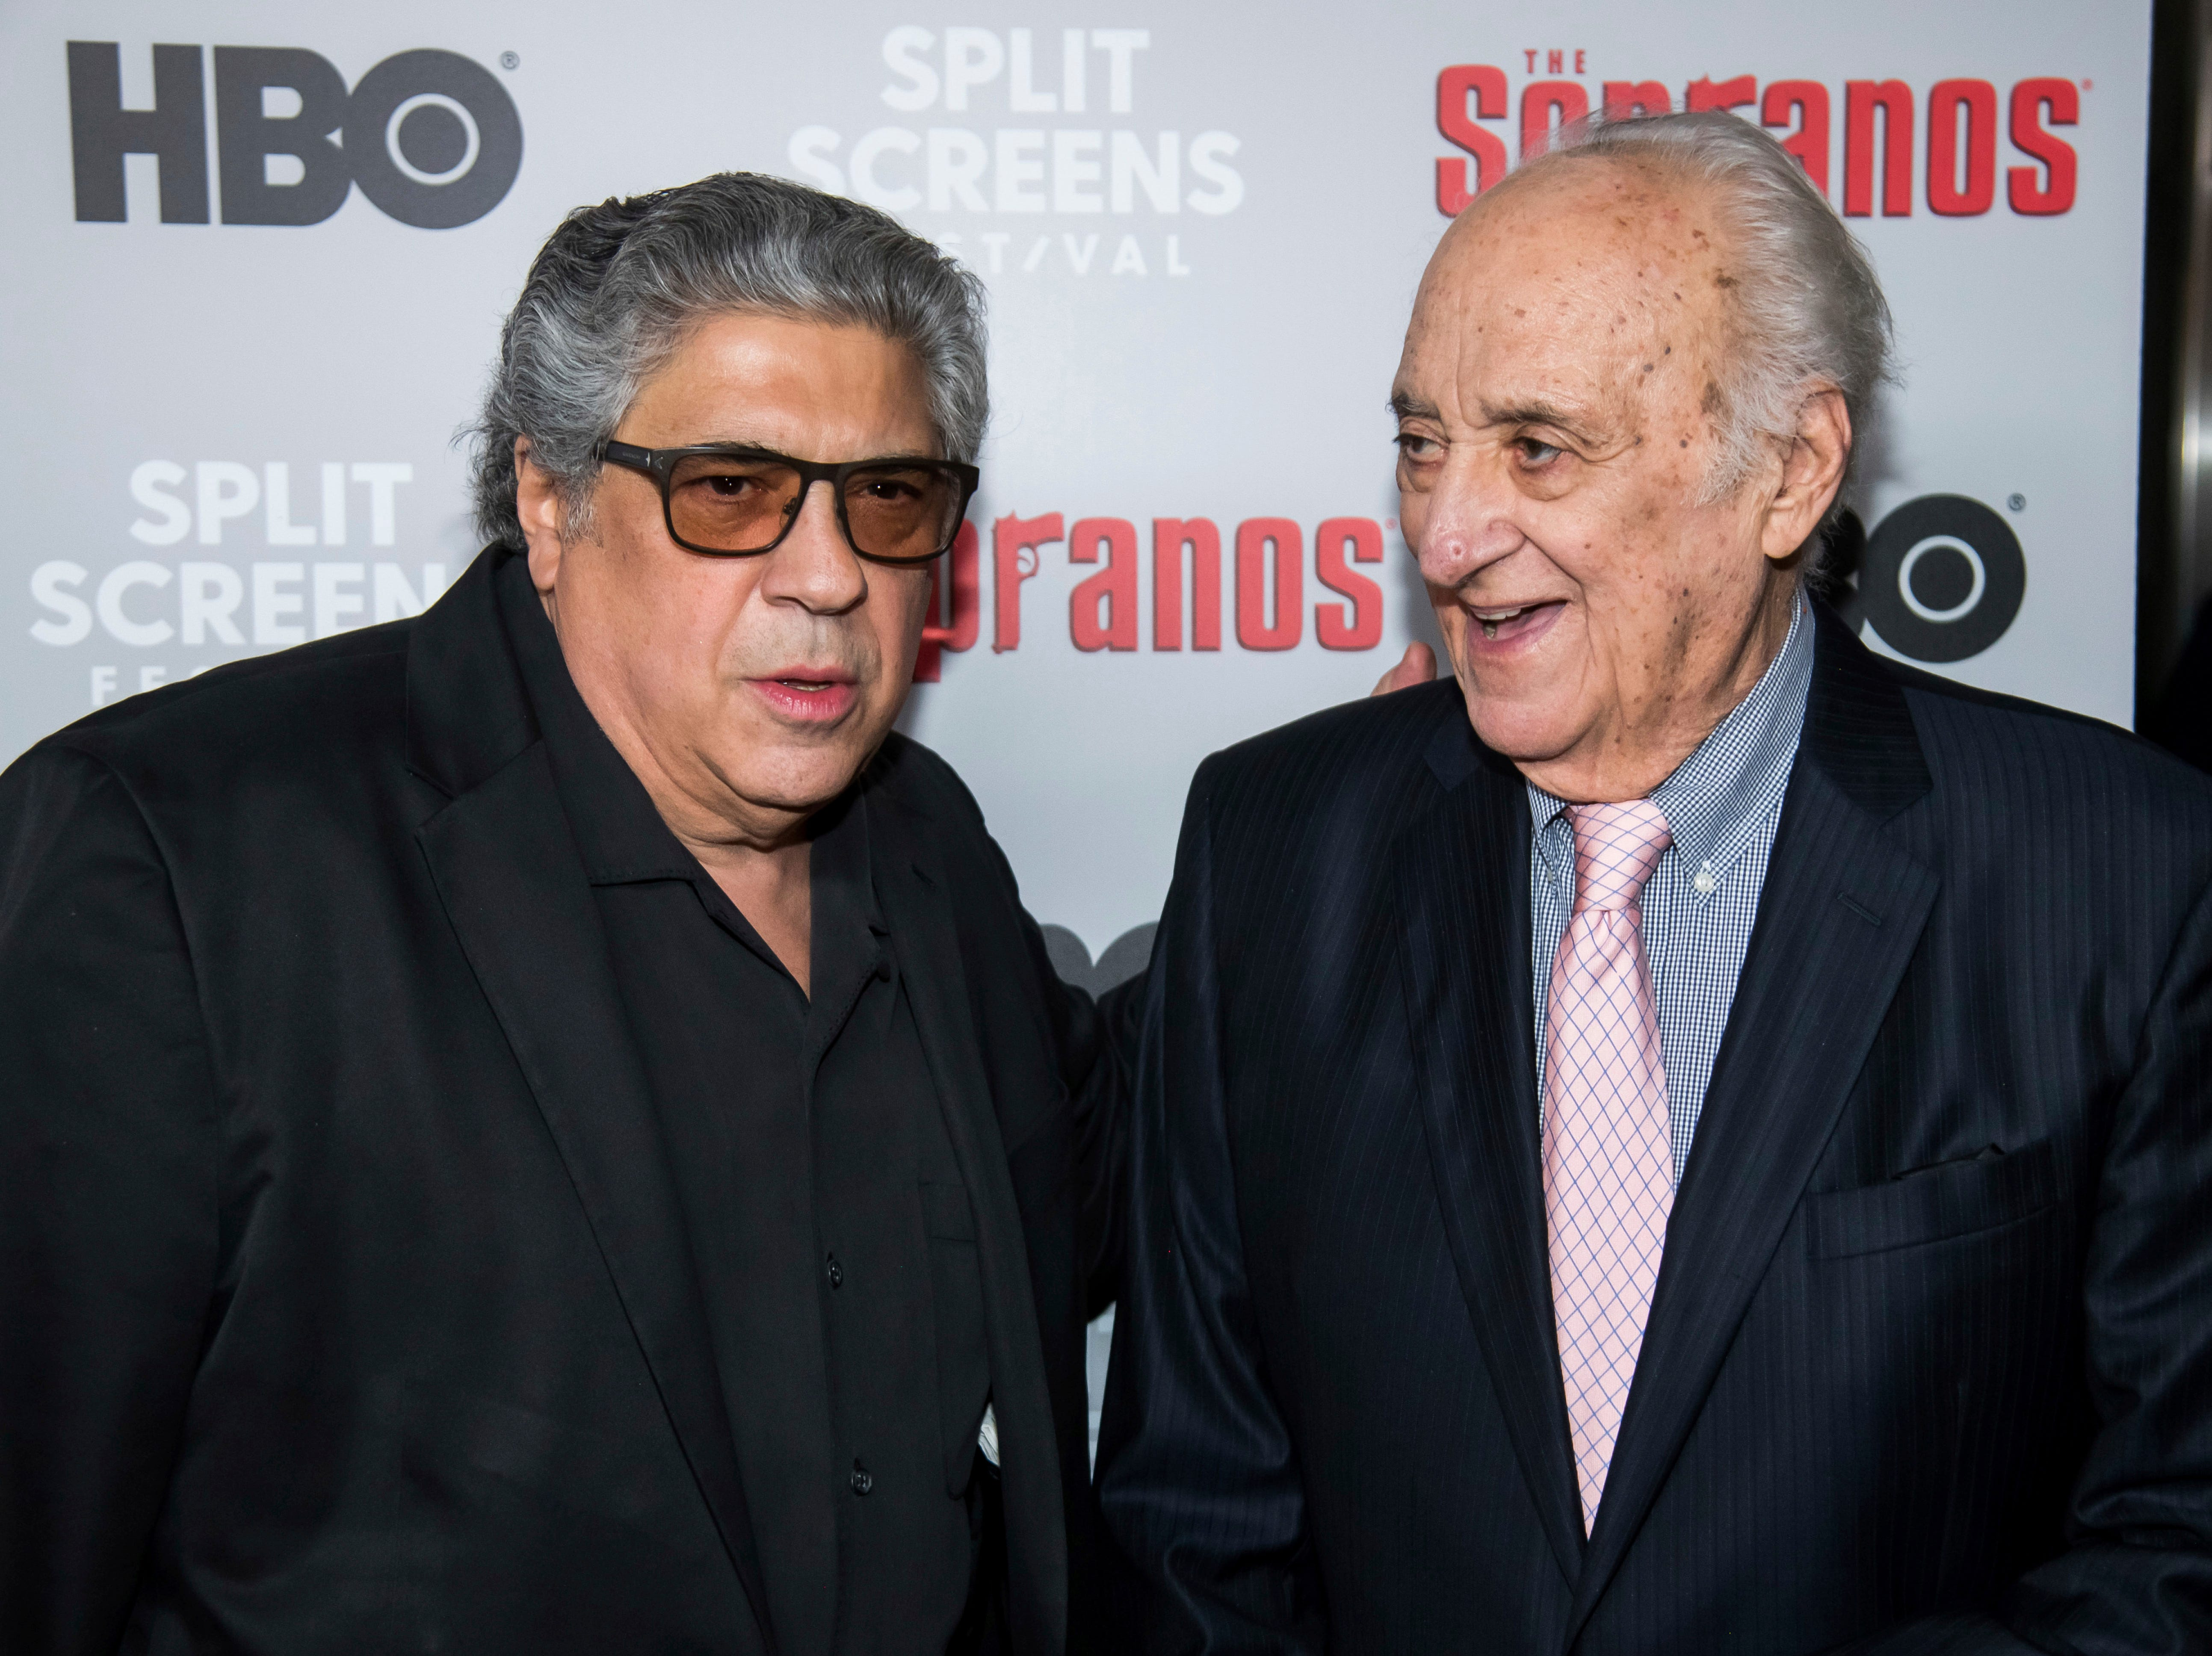 """Vincent Pastore, left, and Jerry Adler attends HBO's """"The Sopranos"""" 20th anniversary at the SVA Theatre on Wednesday, Jan. 9, 2019, in New York. (Photo by Charles Sykes/Invision/AP)"""